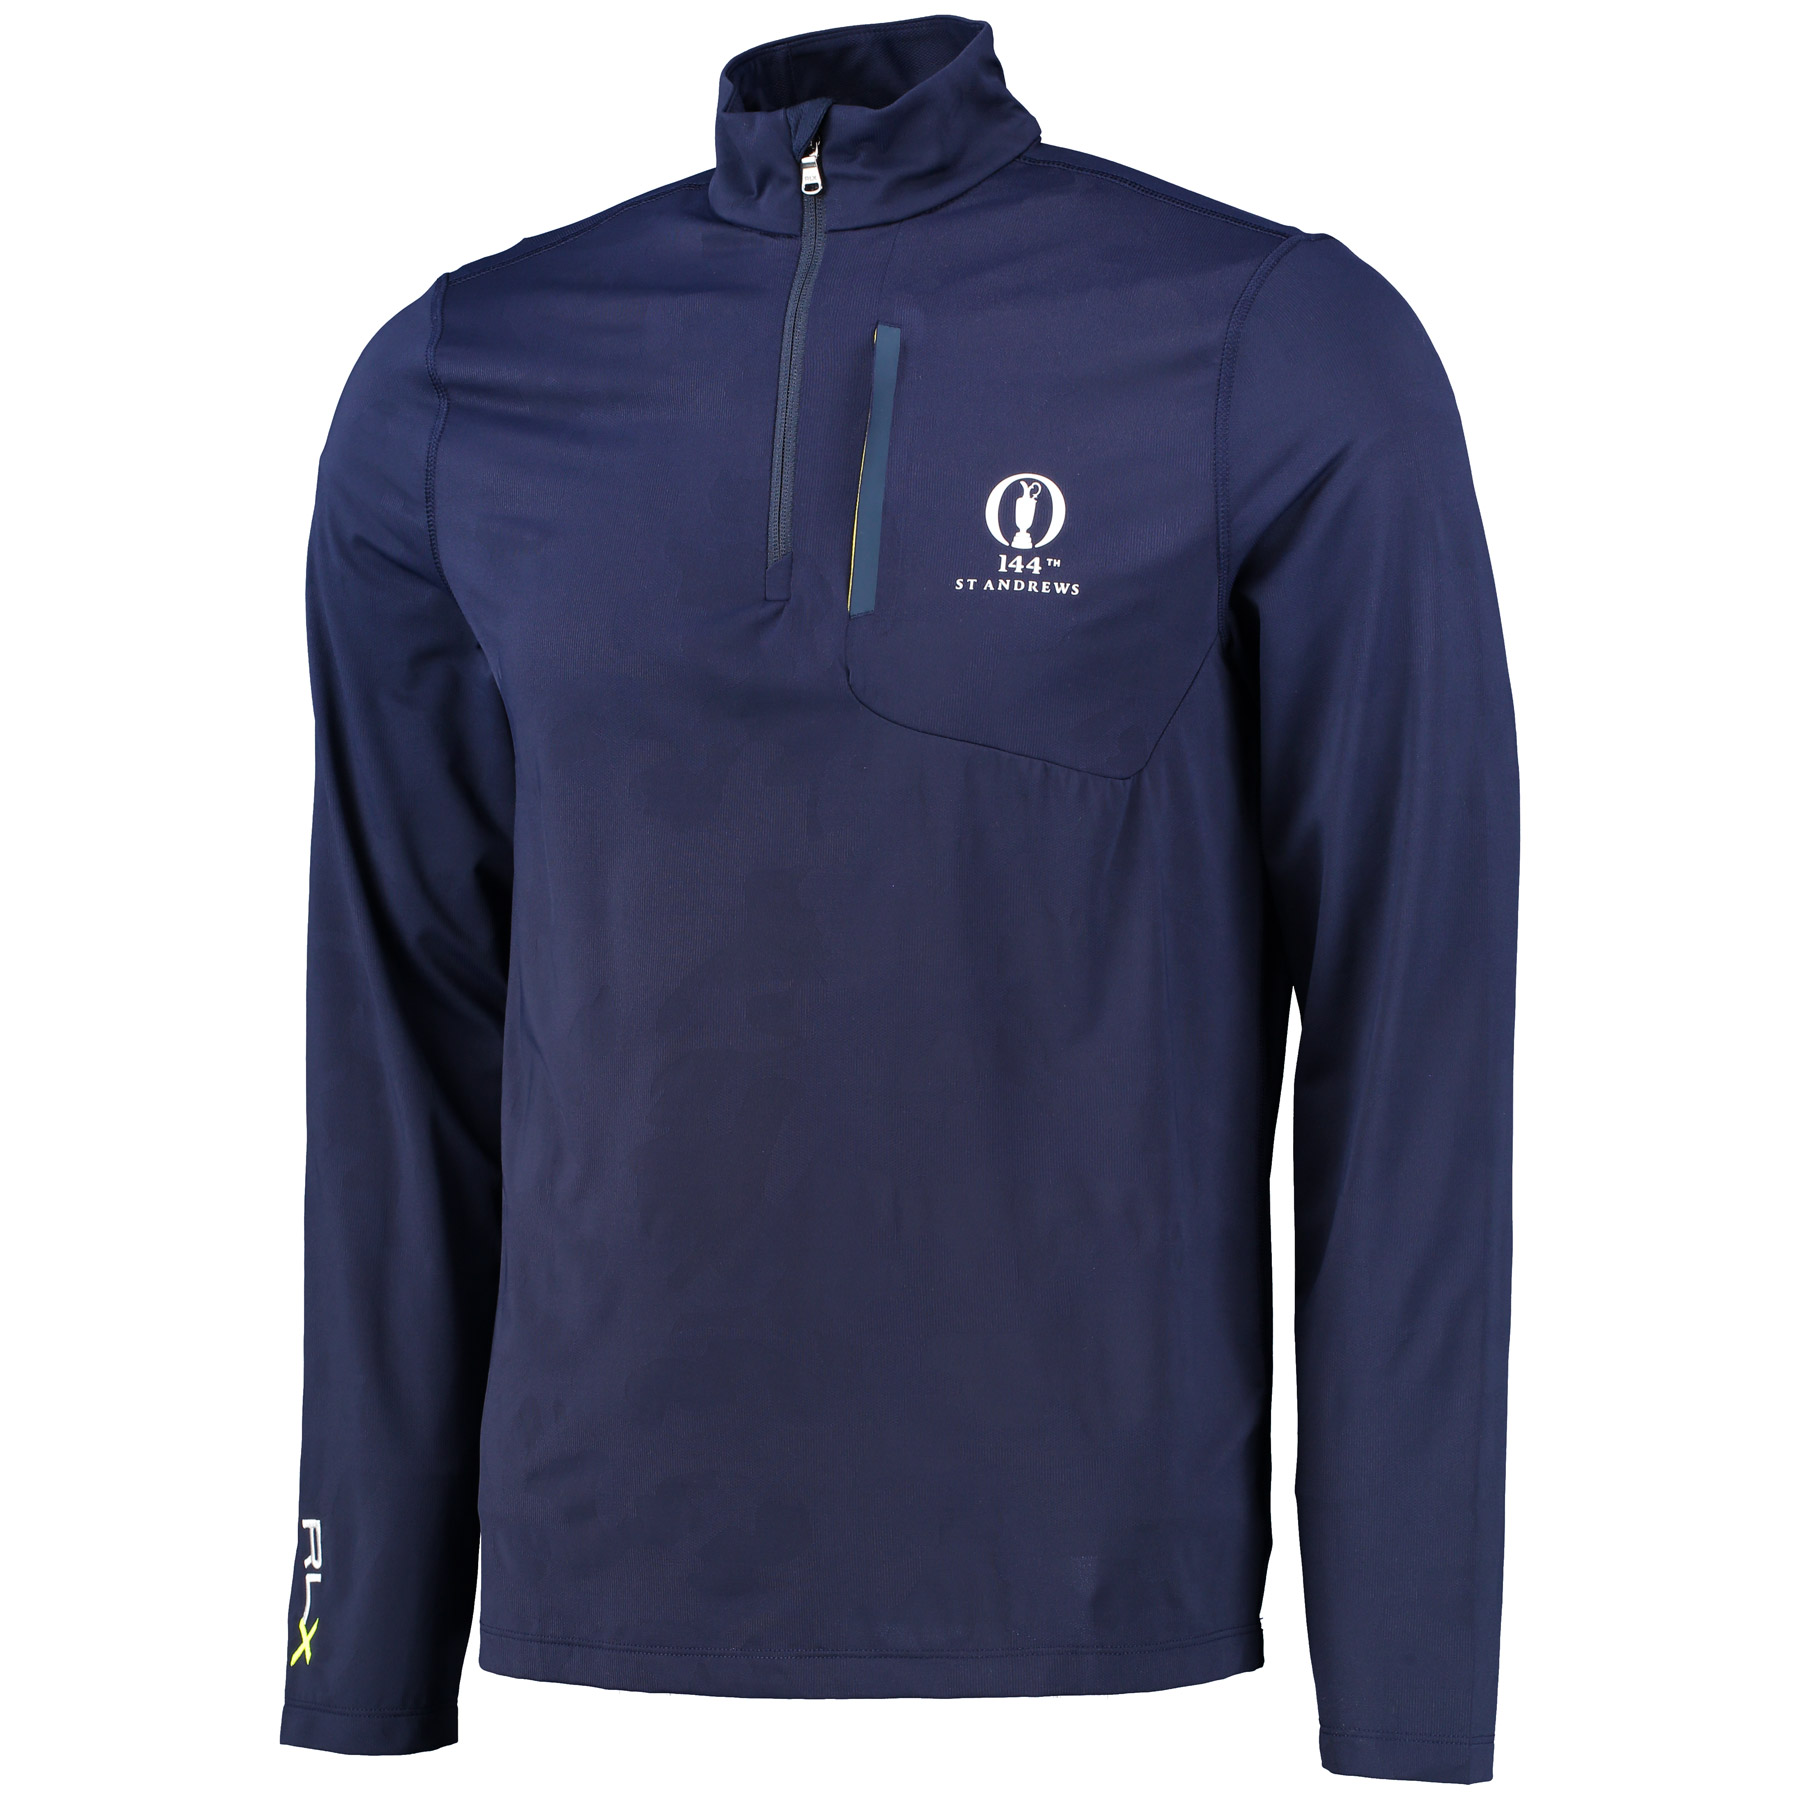 The Open 144th St Andrews RLX Mock Neck Half Zip Long Sleeve Knit - French Navy/Camo